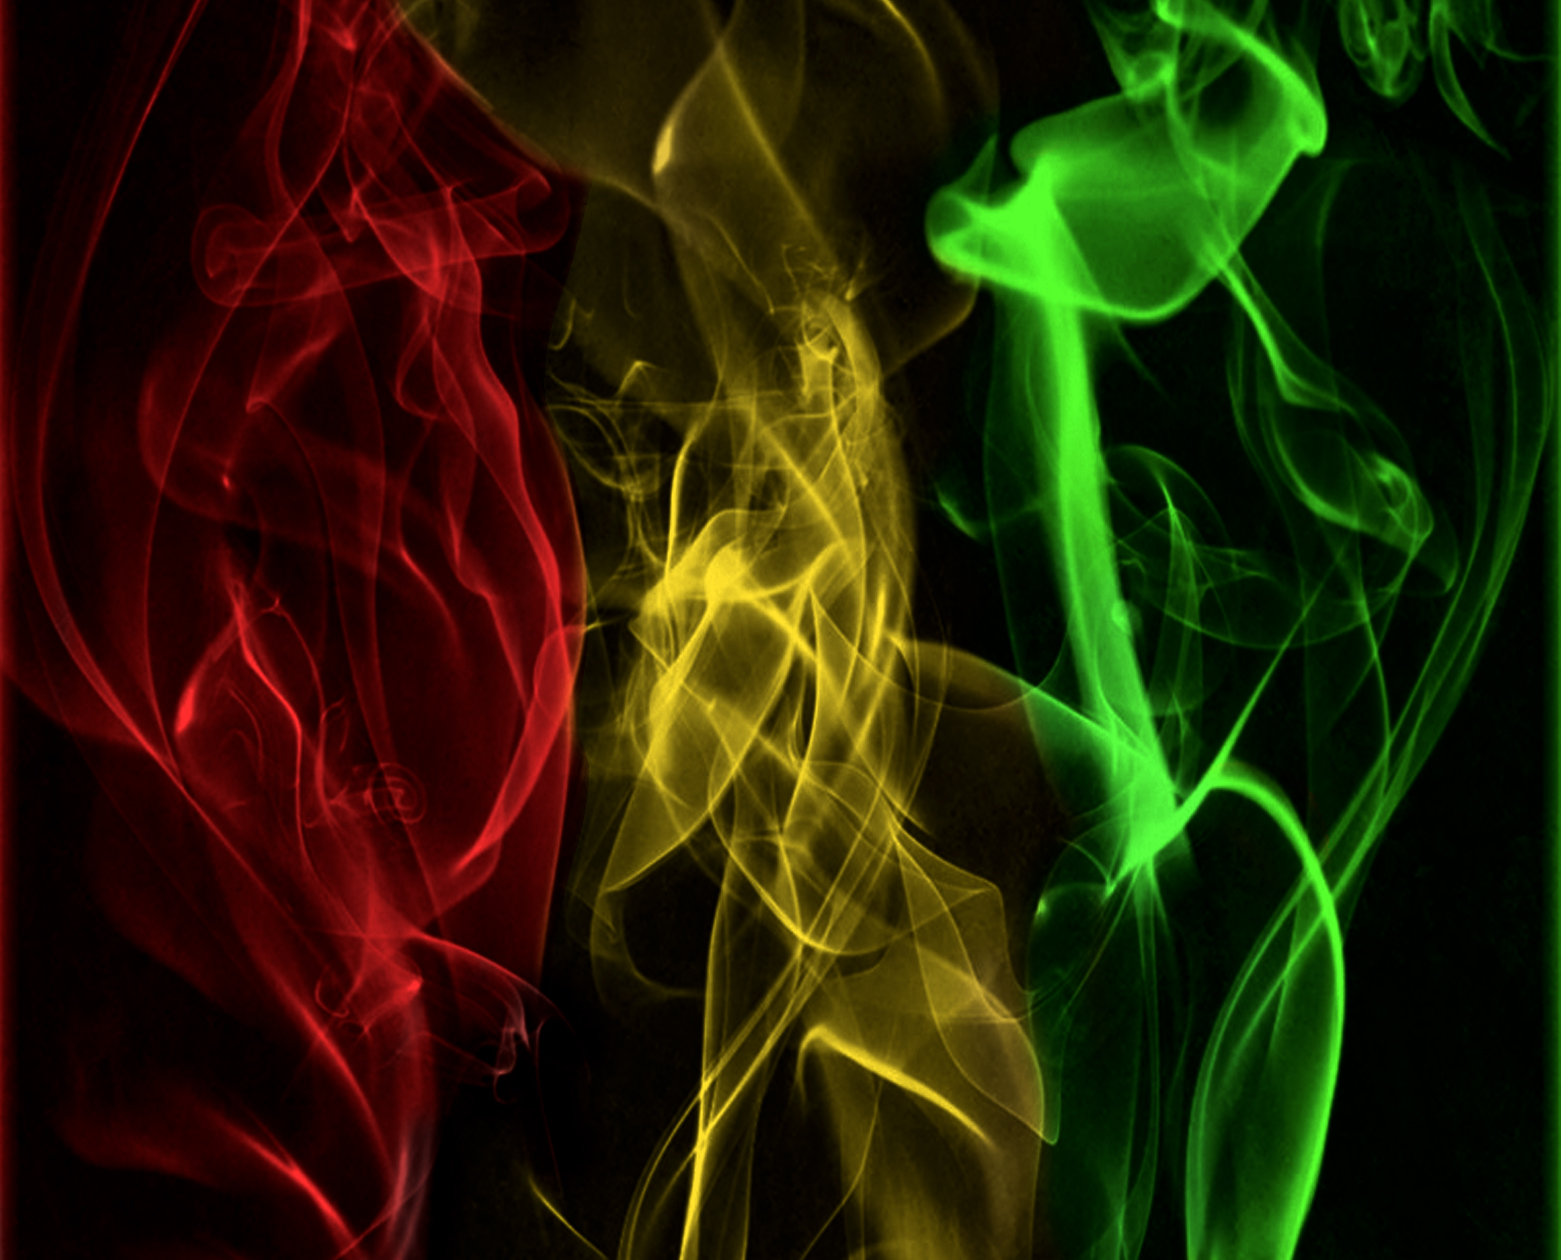 rasta smoke wallpaper moving - photo #3